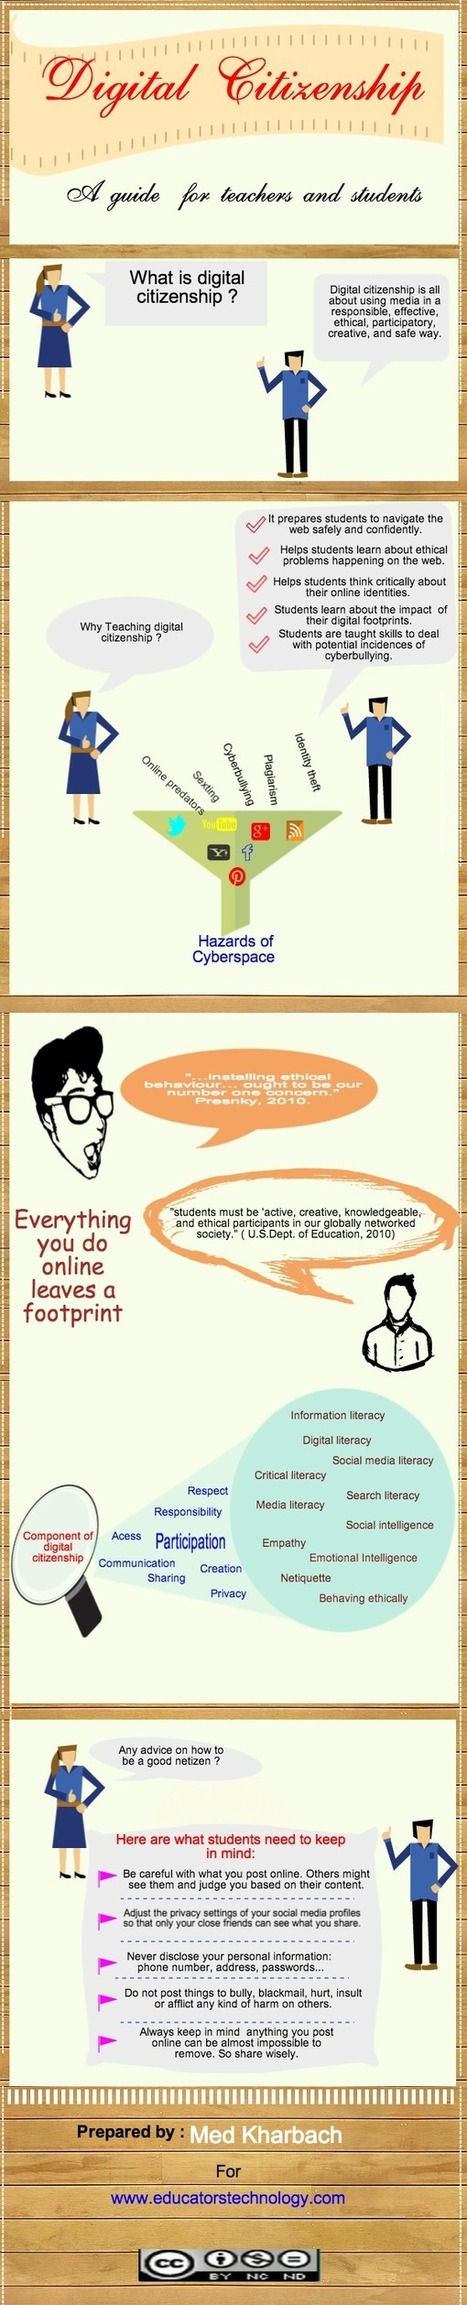 Digital Citizenship Explained for Teachers ~ Educational Technology and Mobile Learning | learning21andbeyond | Scoop.it